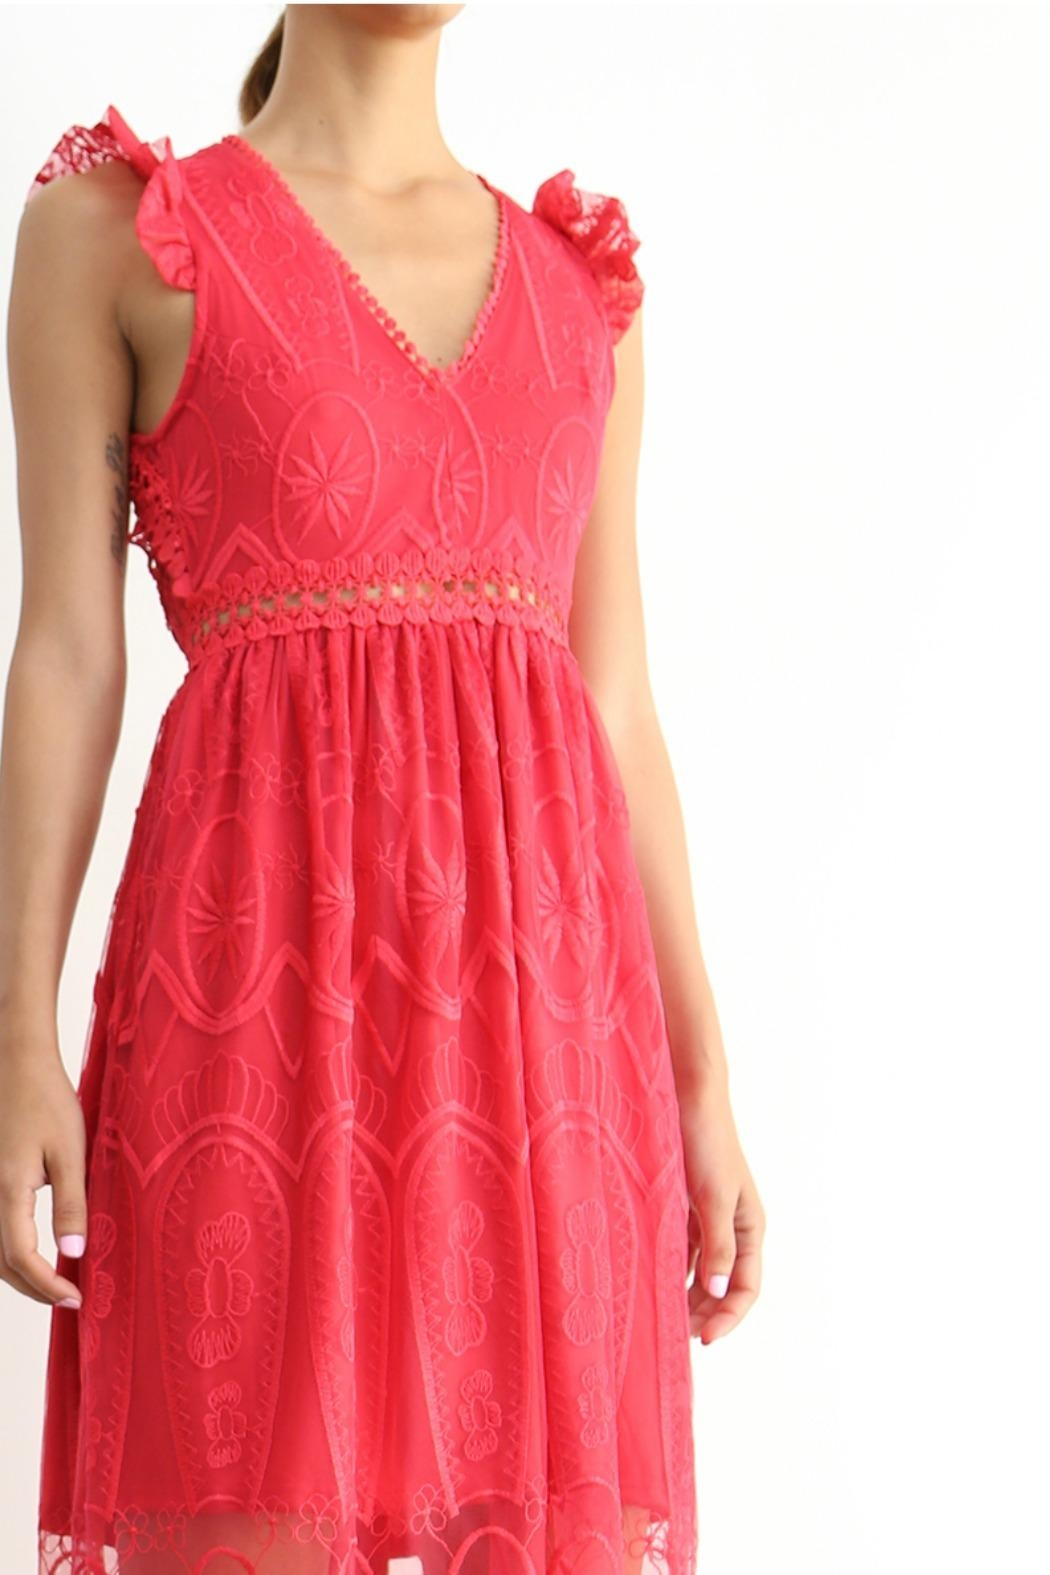 BEULAH STYLE Rose Red Dress - Front Full Image